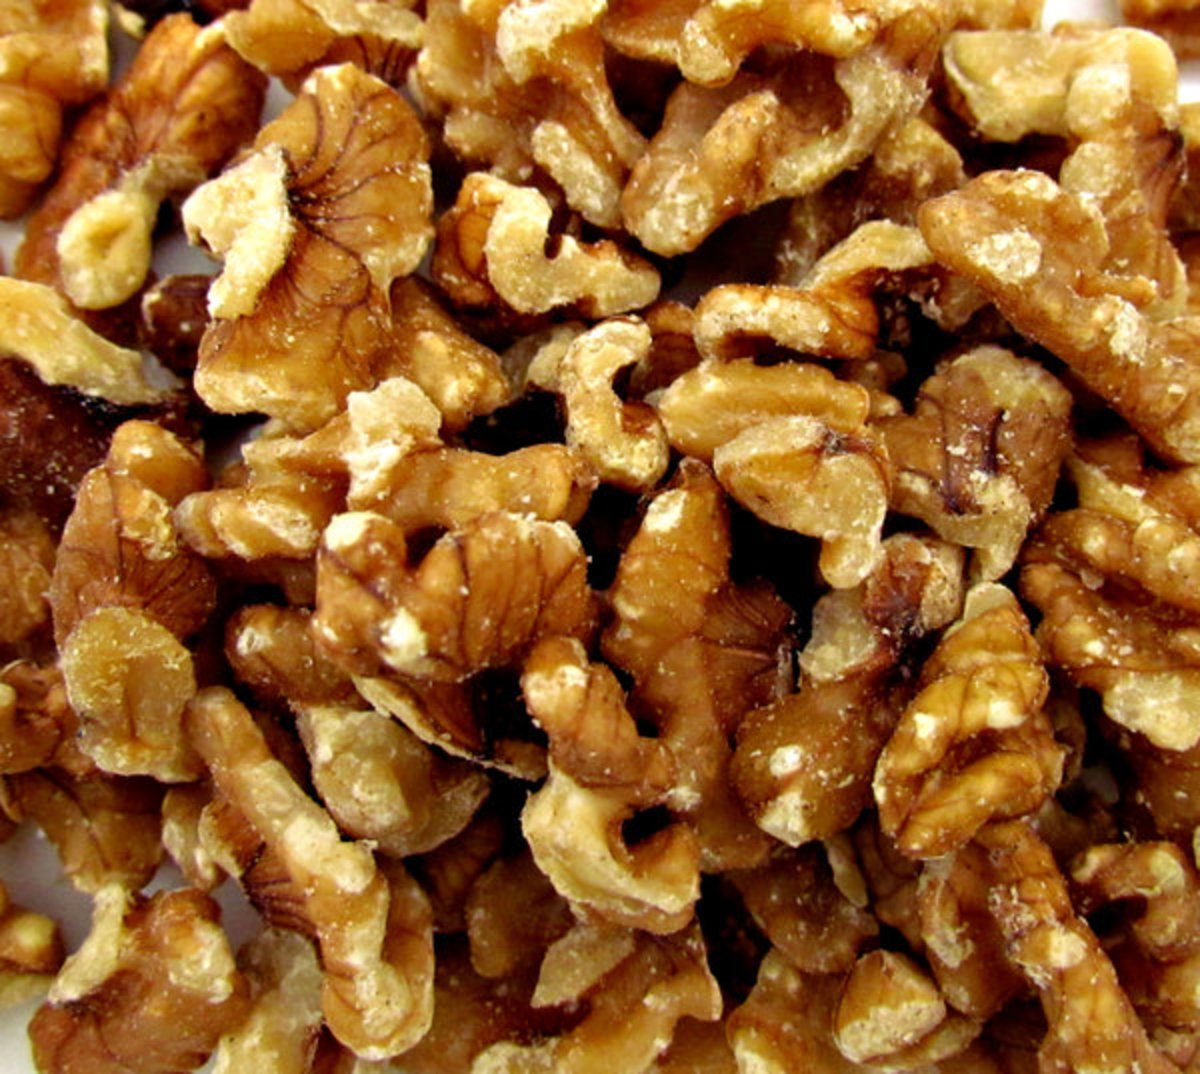 Home Remedies for Constipation - Natural Laxative - Walnuts